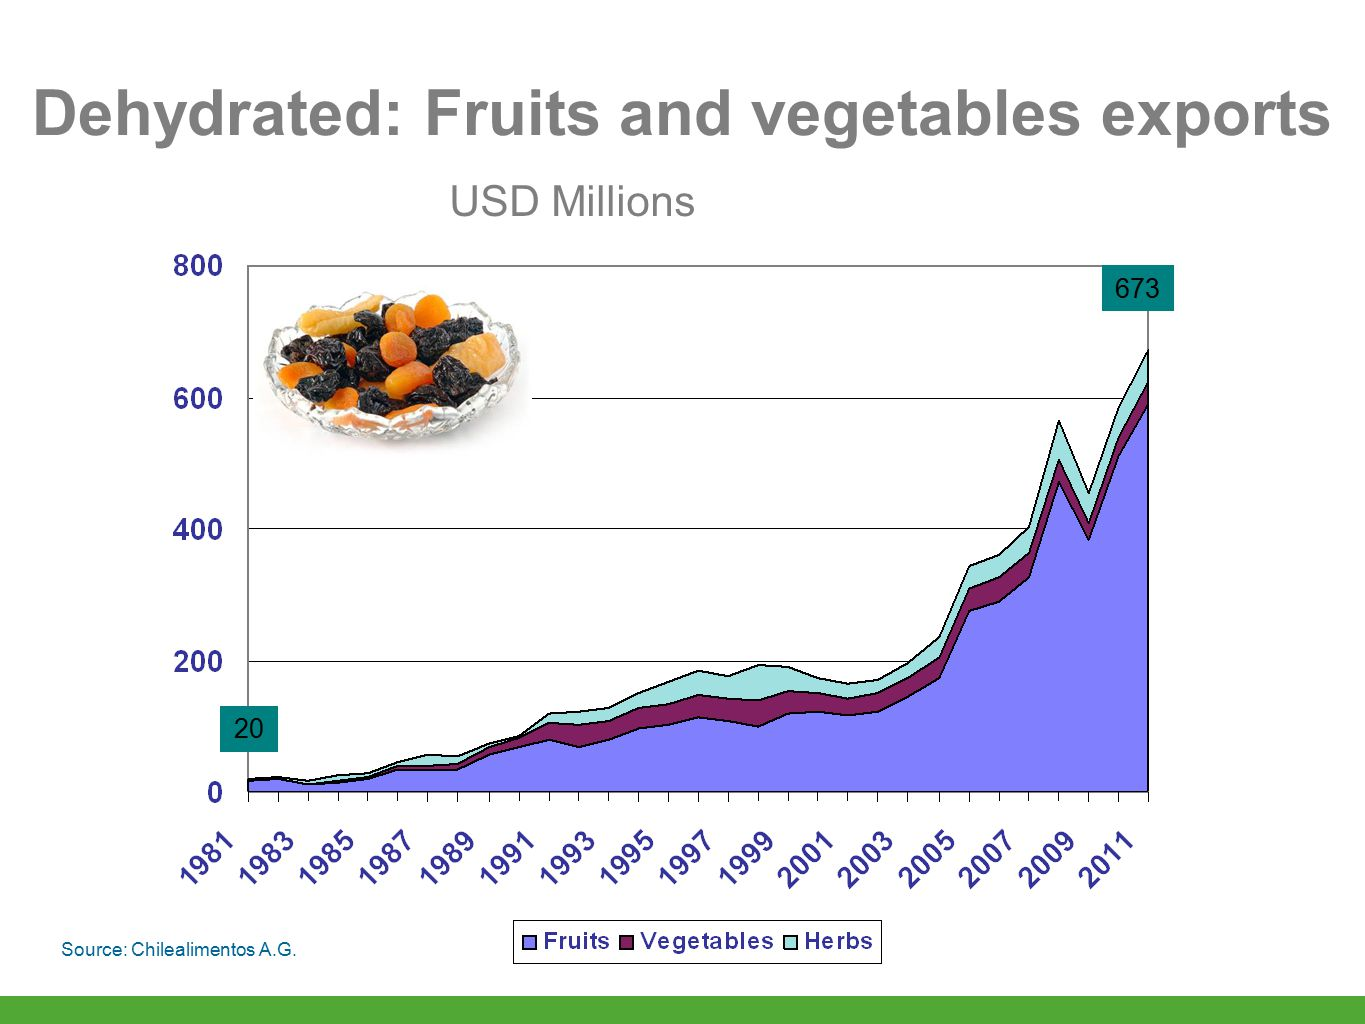 Dehydrated: Fruits and vegetables exports Source: Chilealimentos A.G. 20 673 USD Millions